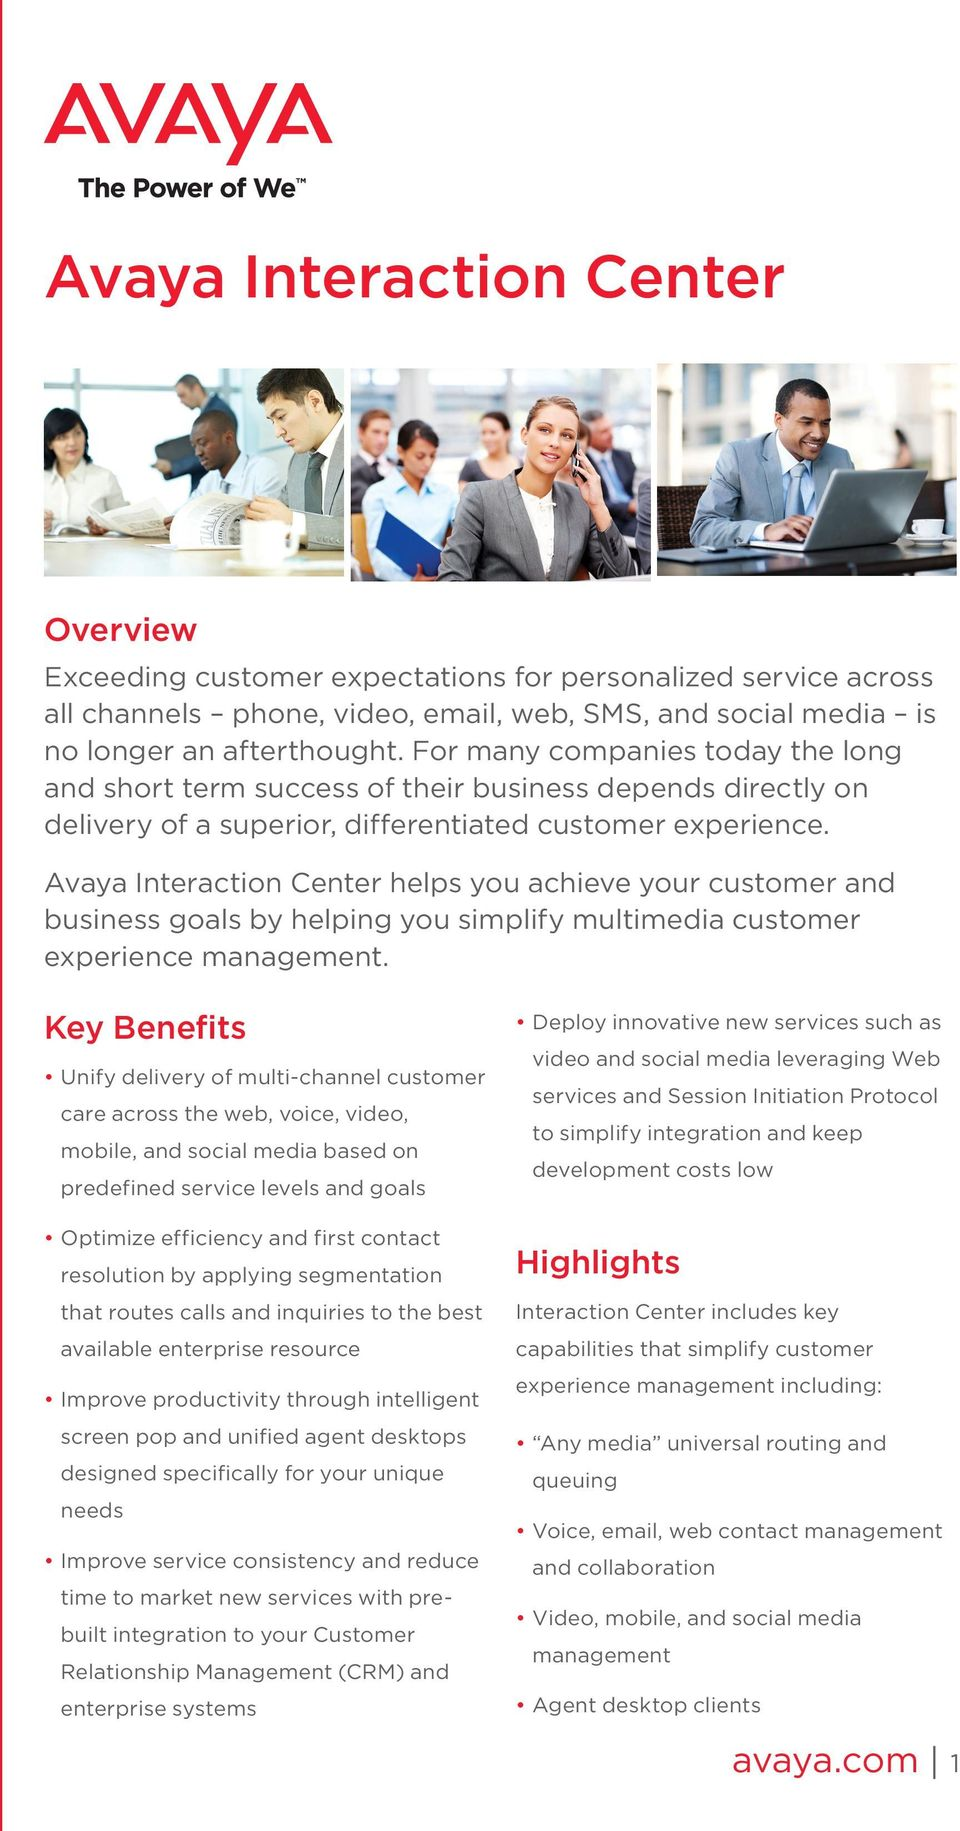 Avaya Interaction Center helps you achieve your customer and business goals by helping you simplify multimedia customer experience management.